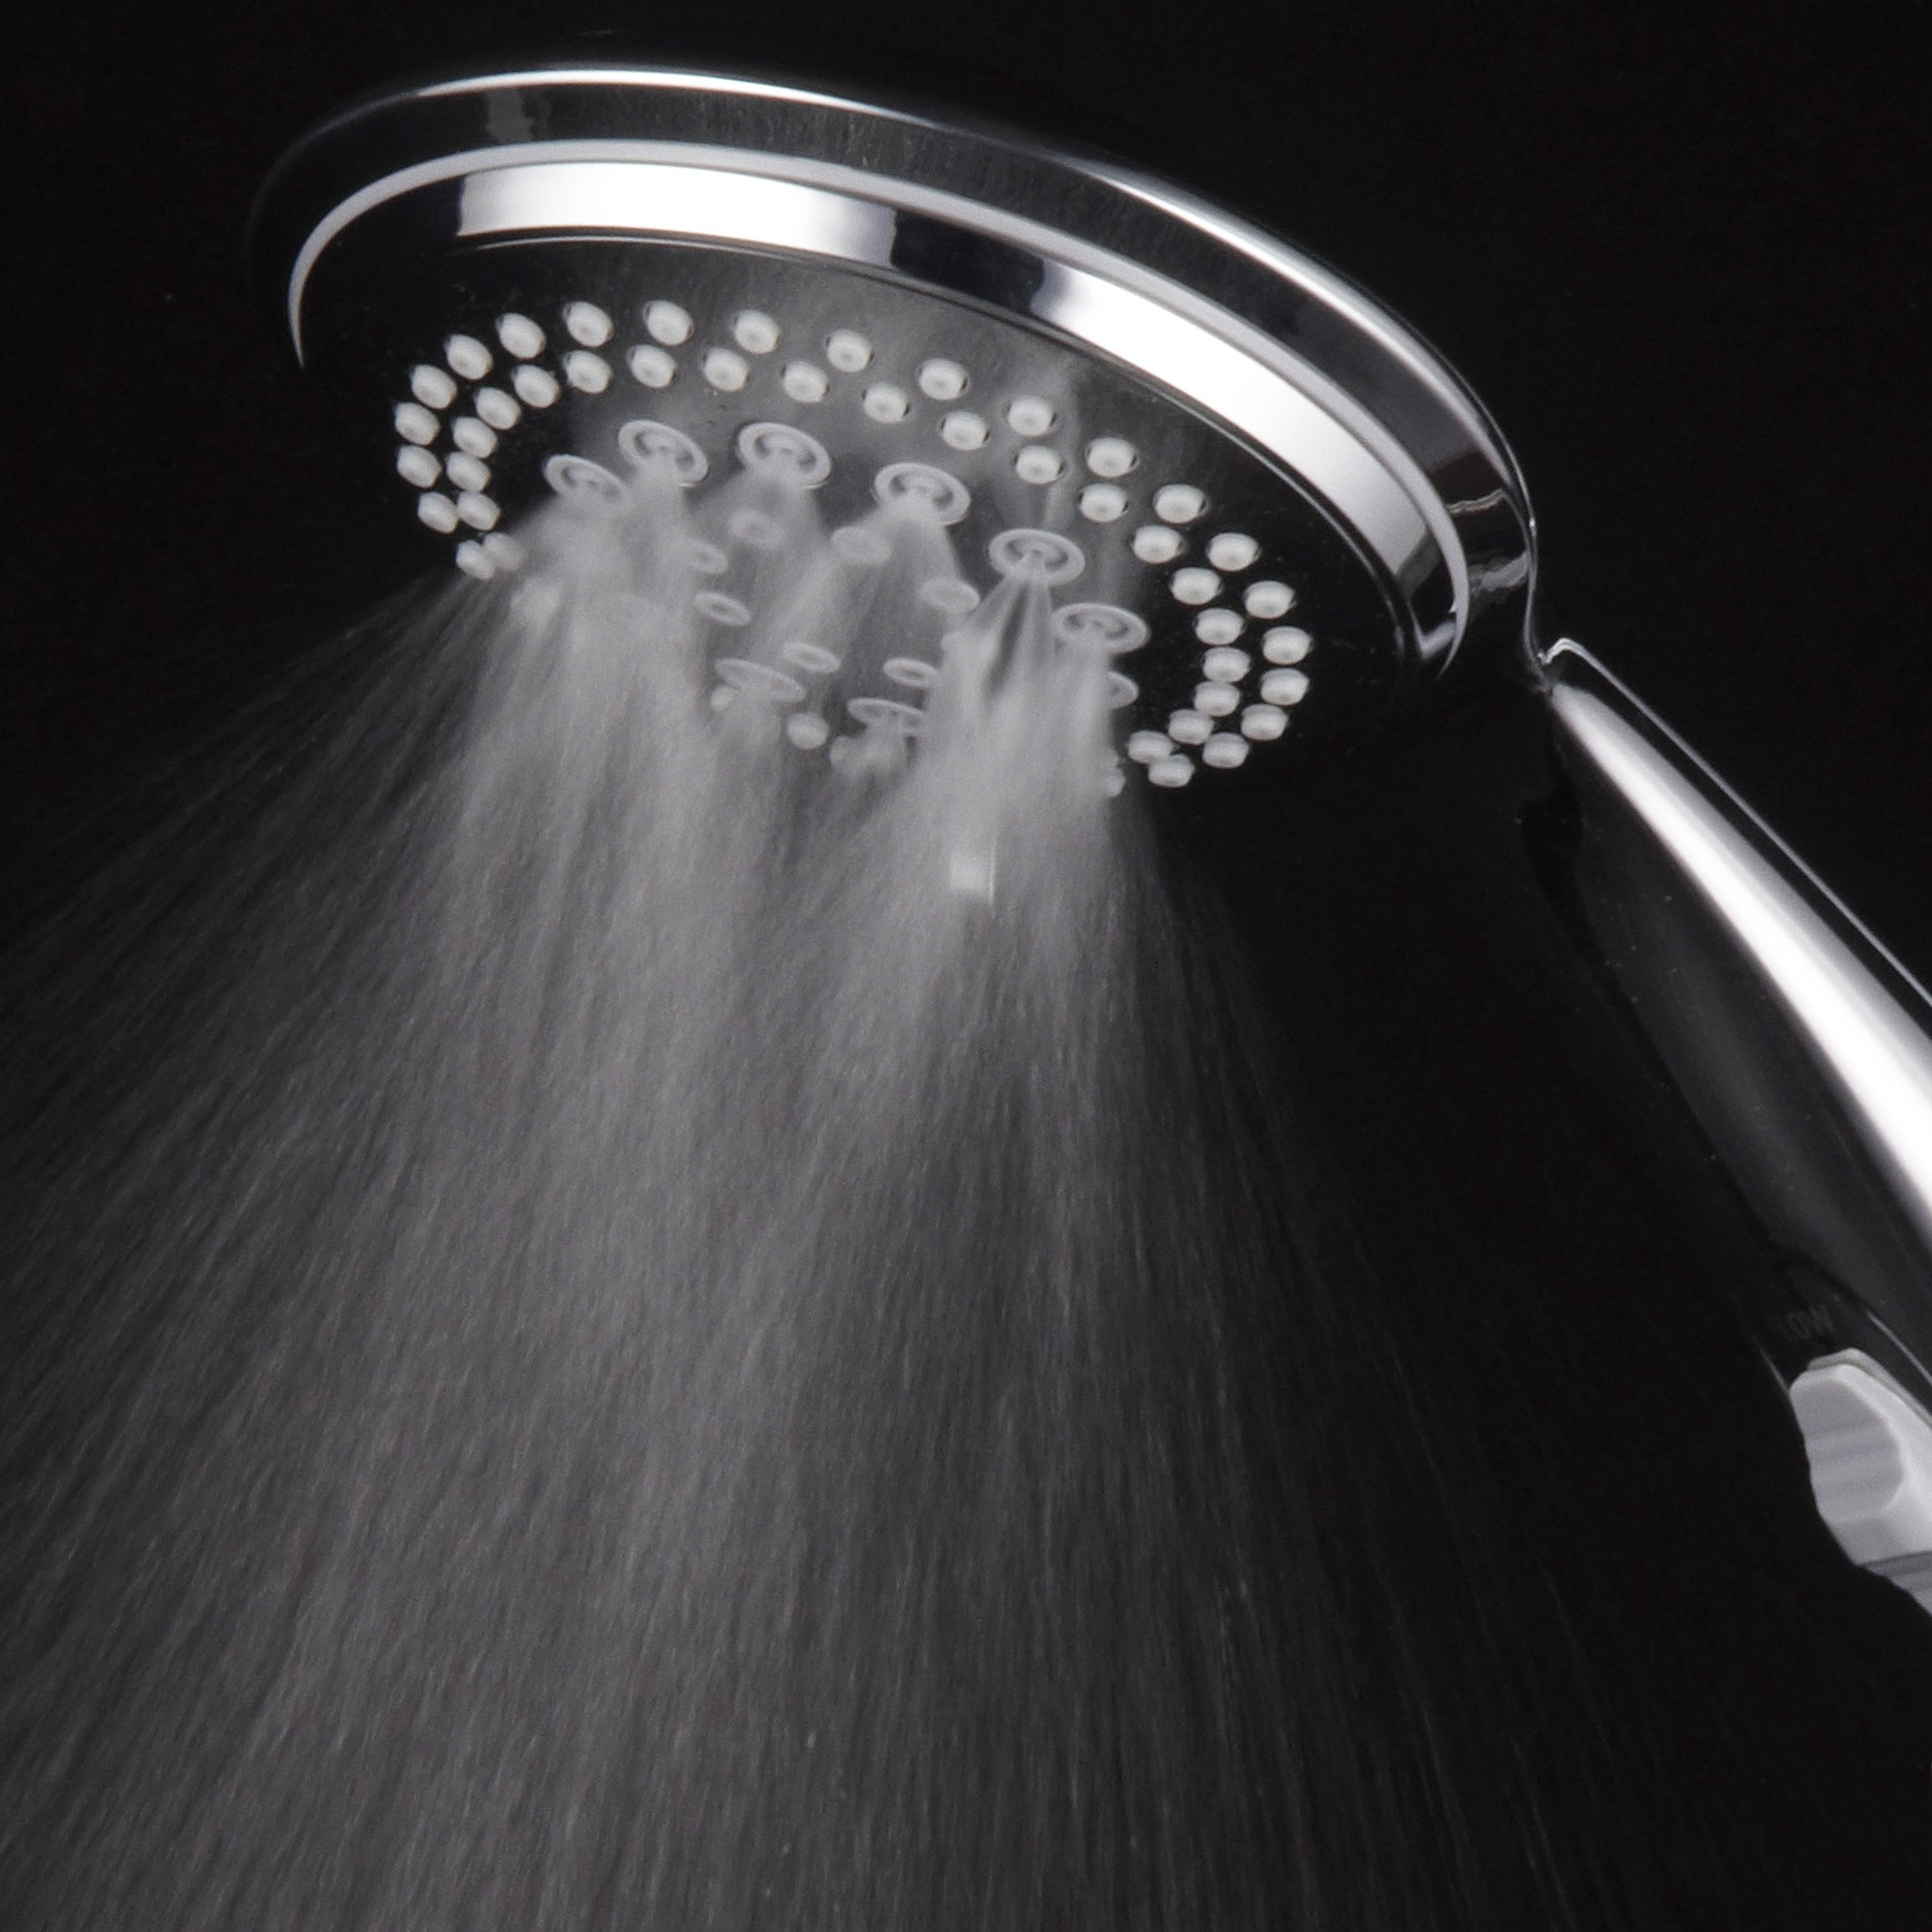 Dream Spa 1459 9-Setting High-Power Ultra-Luxury Handheld Shower Head with Patented ON / OFF Pause Switch and 5-7 foot Stretchable Stainless Steel Hose (Premium Chrome) Use as overhead or handshower by Dream Spa (Image #5)